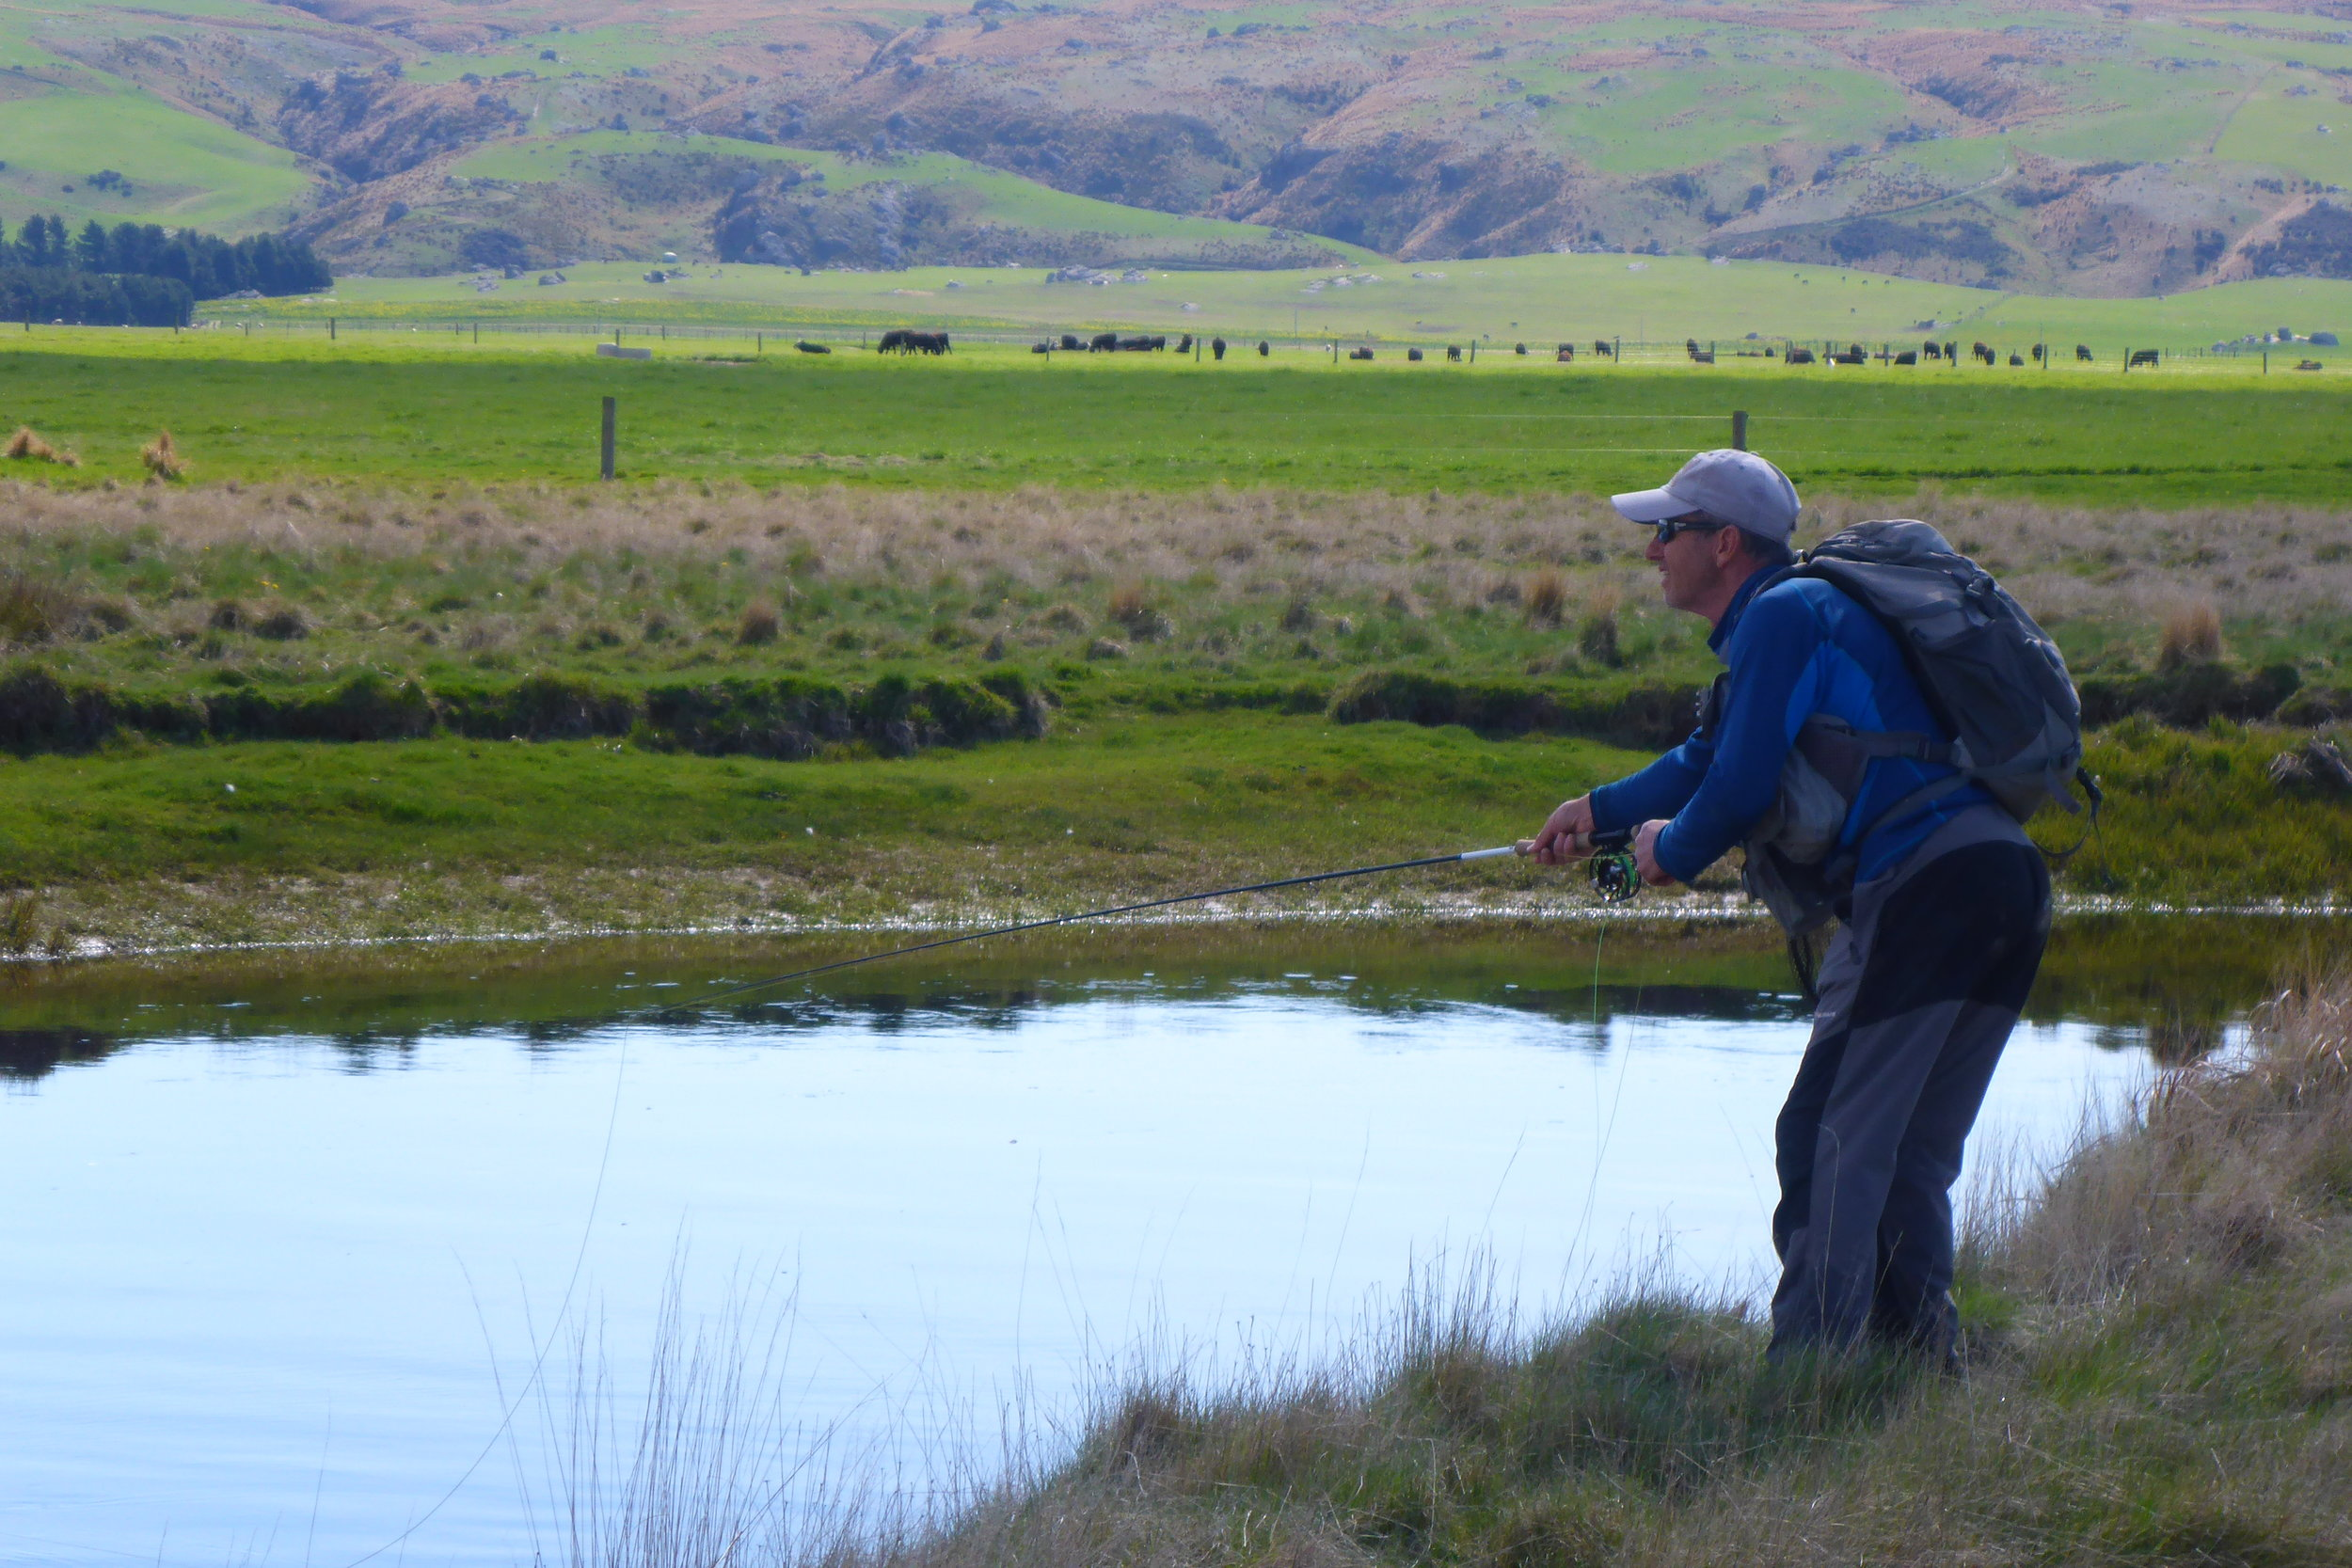 Robbie casting to a riser on the far bank